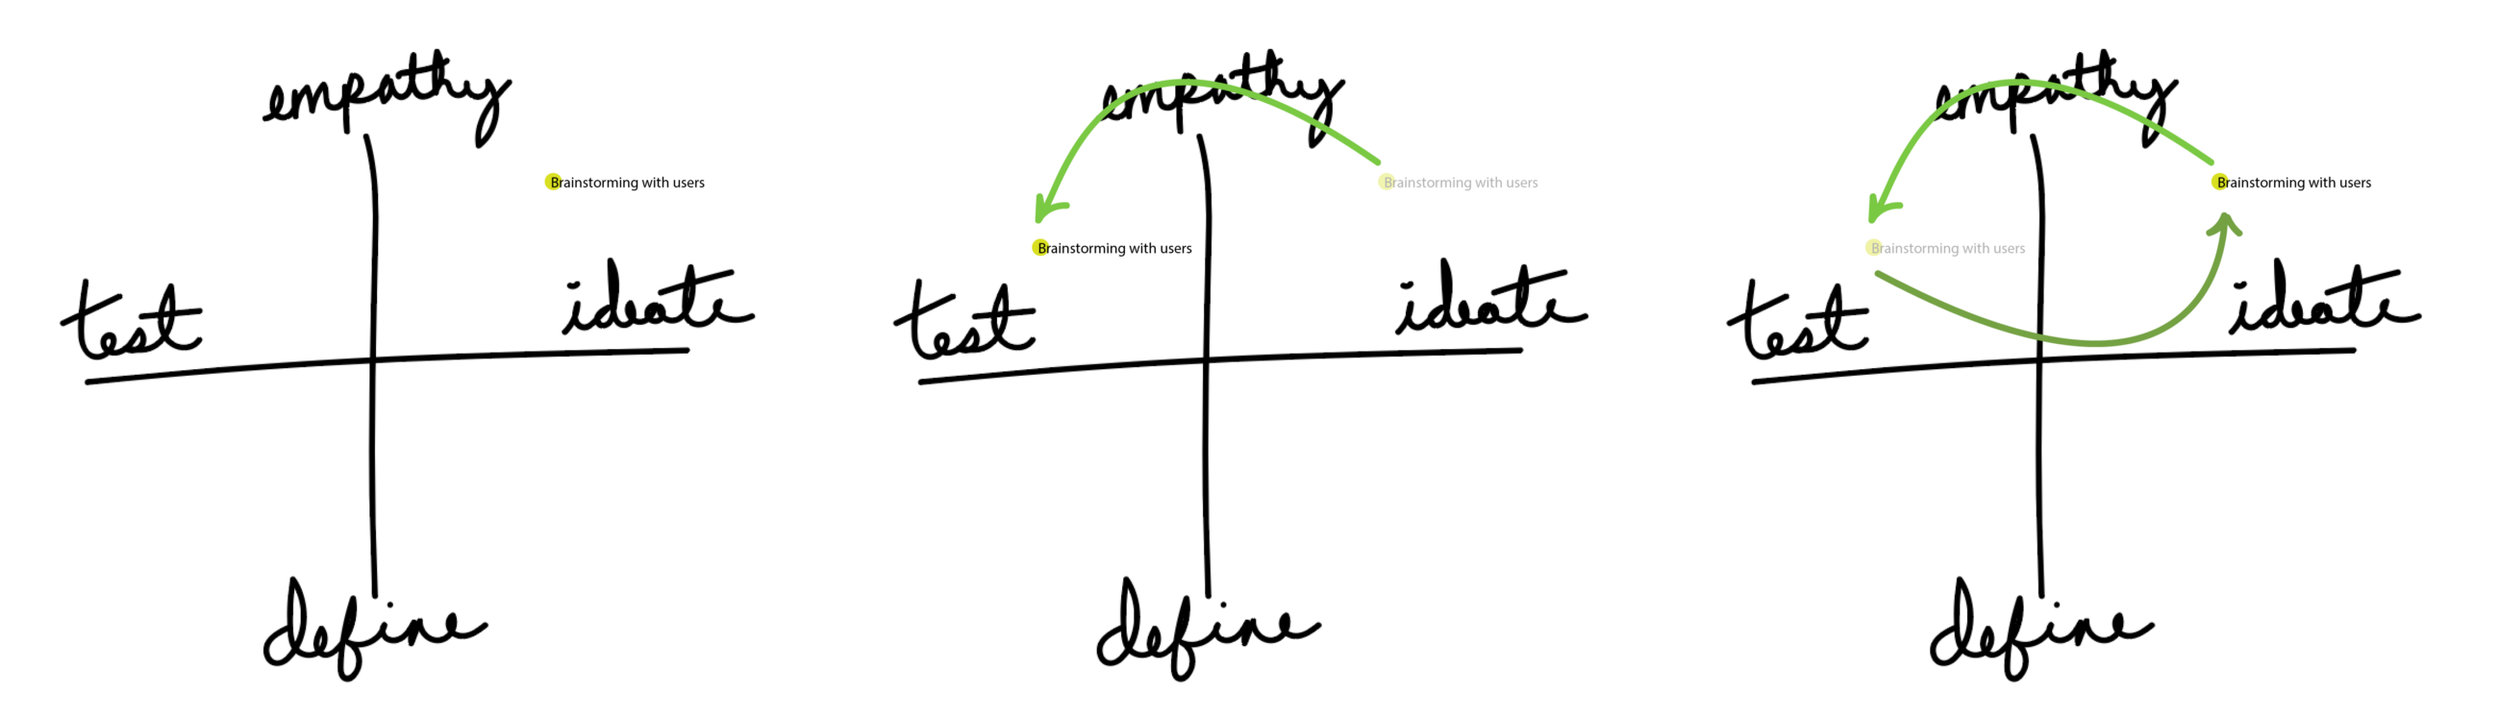 "The node ""Brainstorming with users"" might move between the Empathy/Ideate and Empathy/Test quadrants."